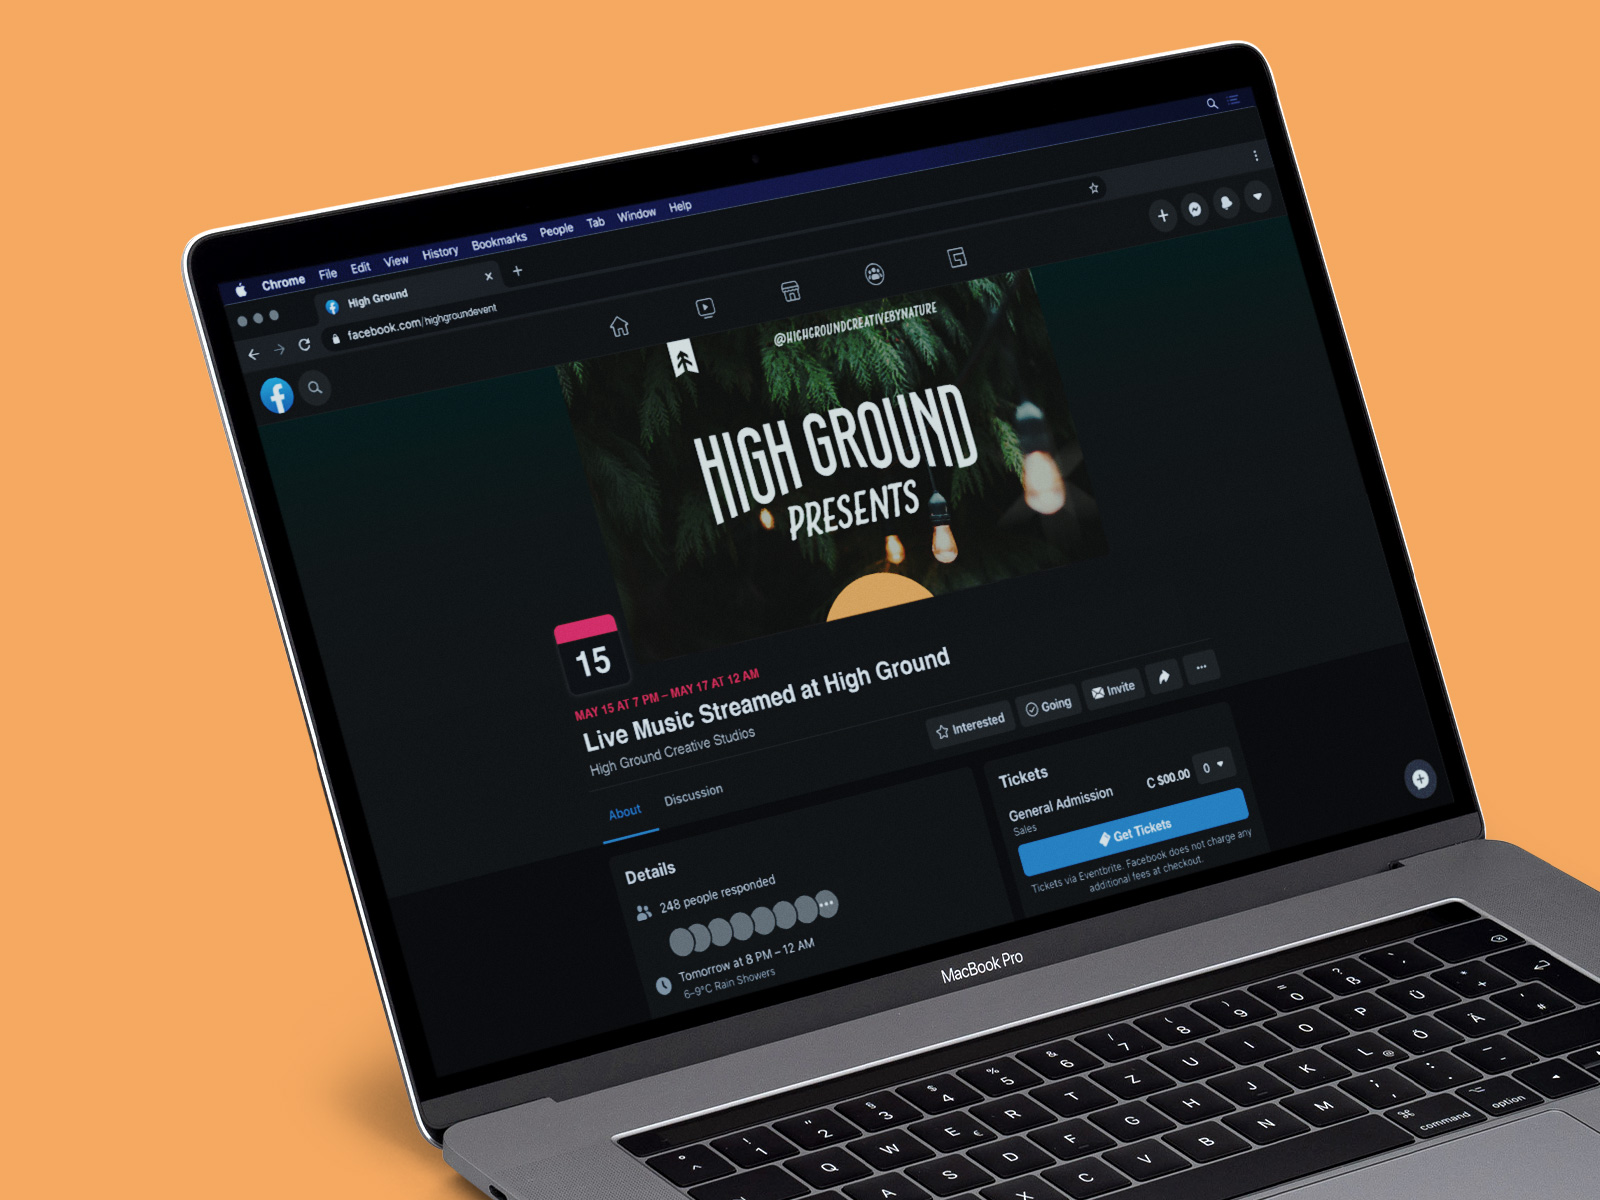 facebook event cover photo for High Ground Brand Identity Design Project